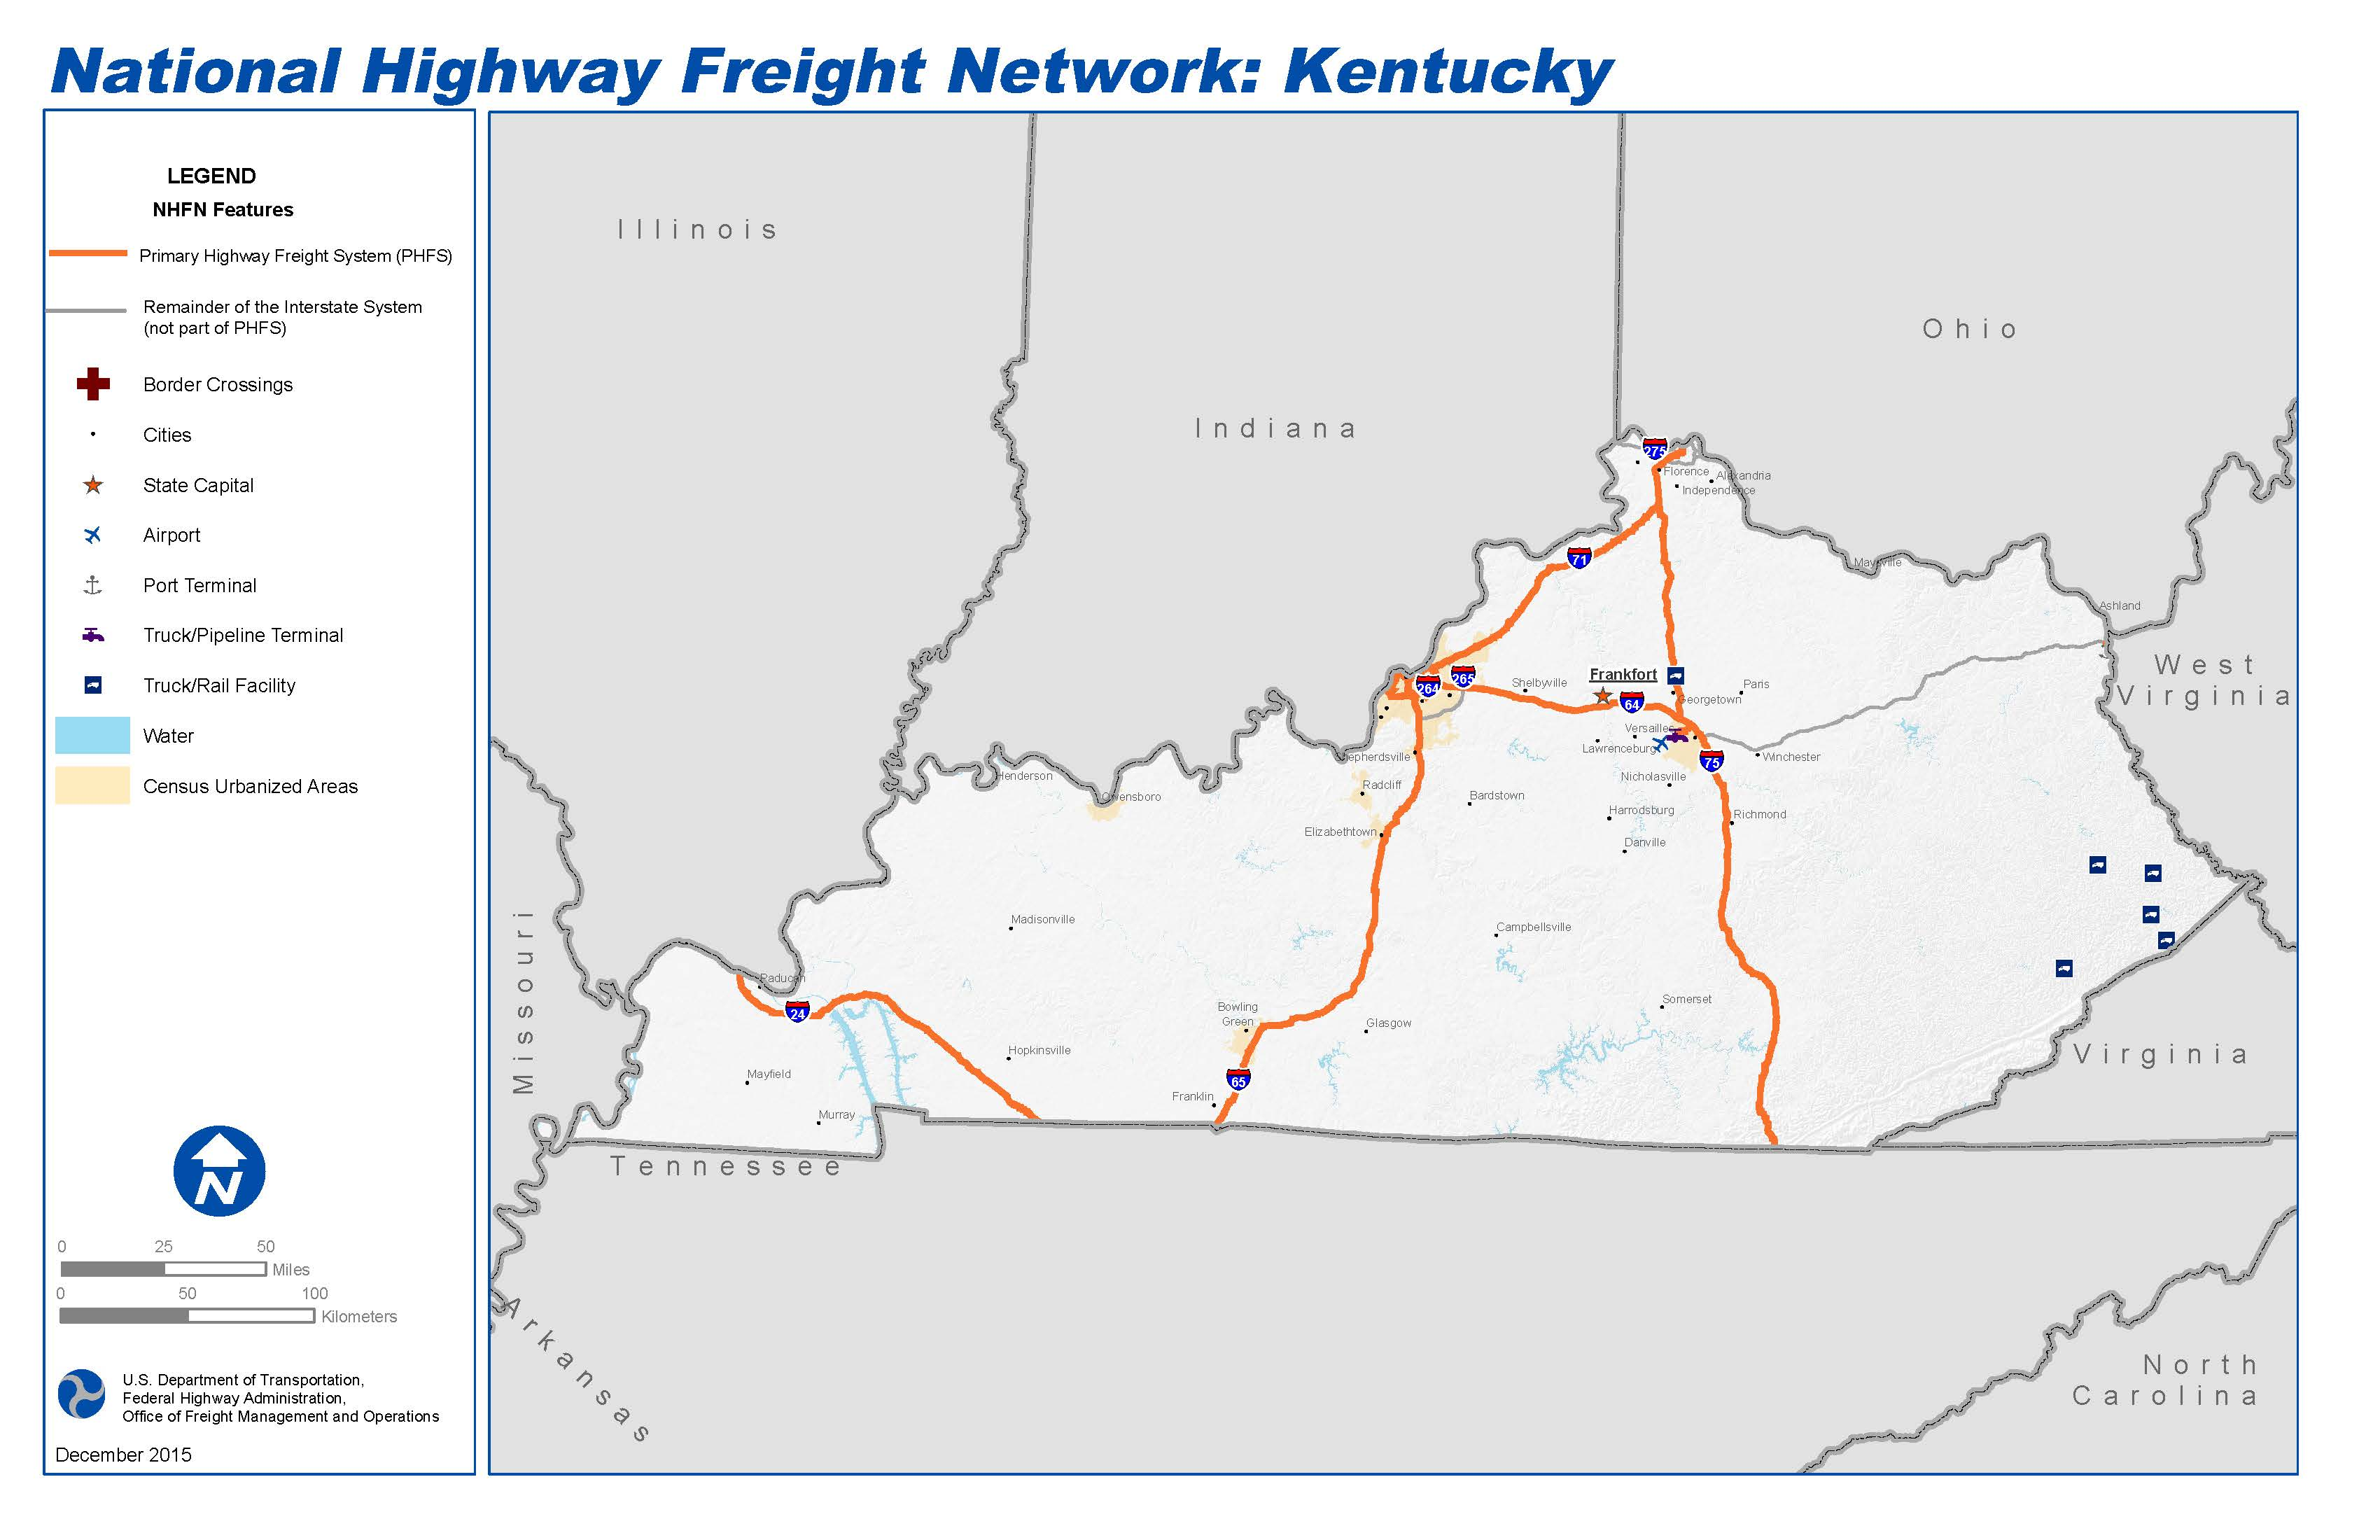 National Highway Freight Network Map and Tables for Kentucky ... on wv map, ae map, indiana map, ne map, sc map, pa map, nm map, ohio map, n. ca map, oh map, tenn map, kentucky map, ri map, new york map, nc map, state map, usa map, mo map, va map, tn map,